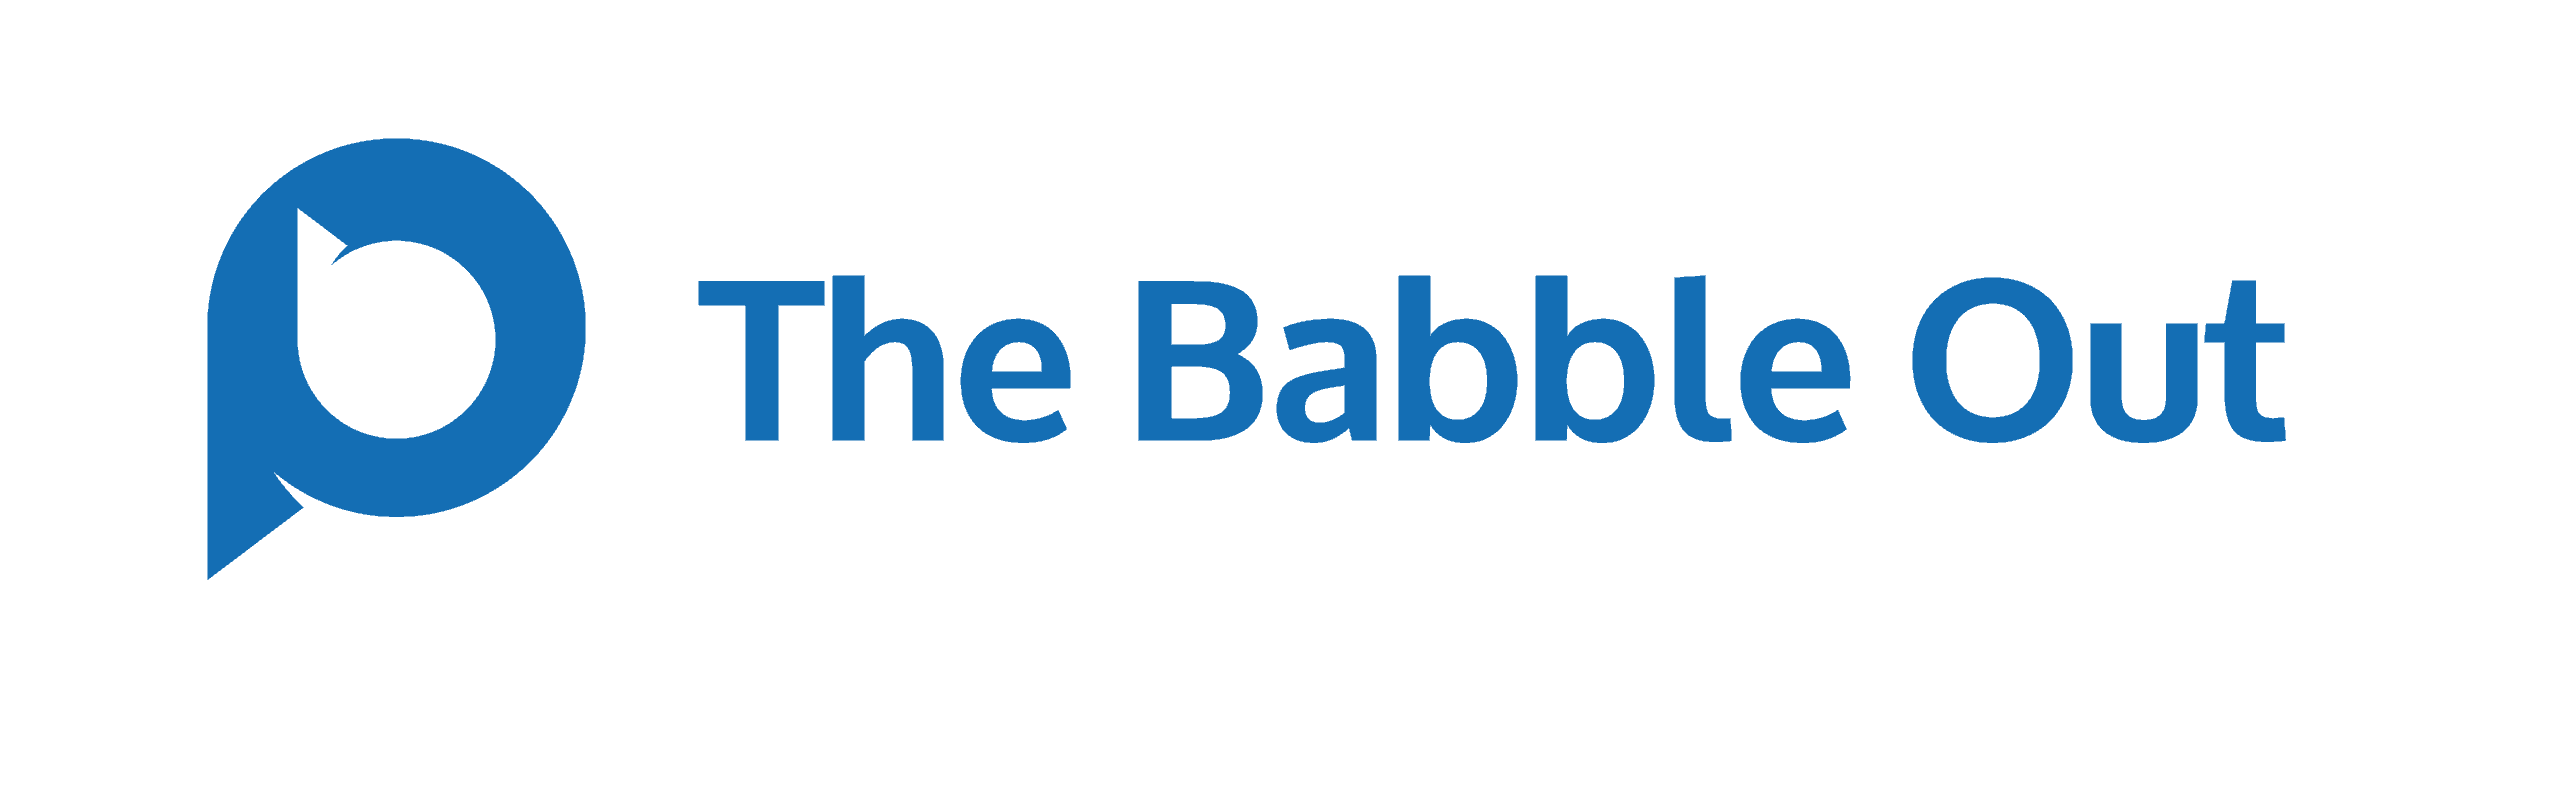 The Babble Out – Product comparison website